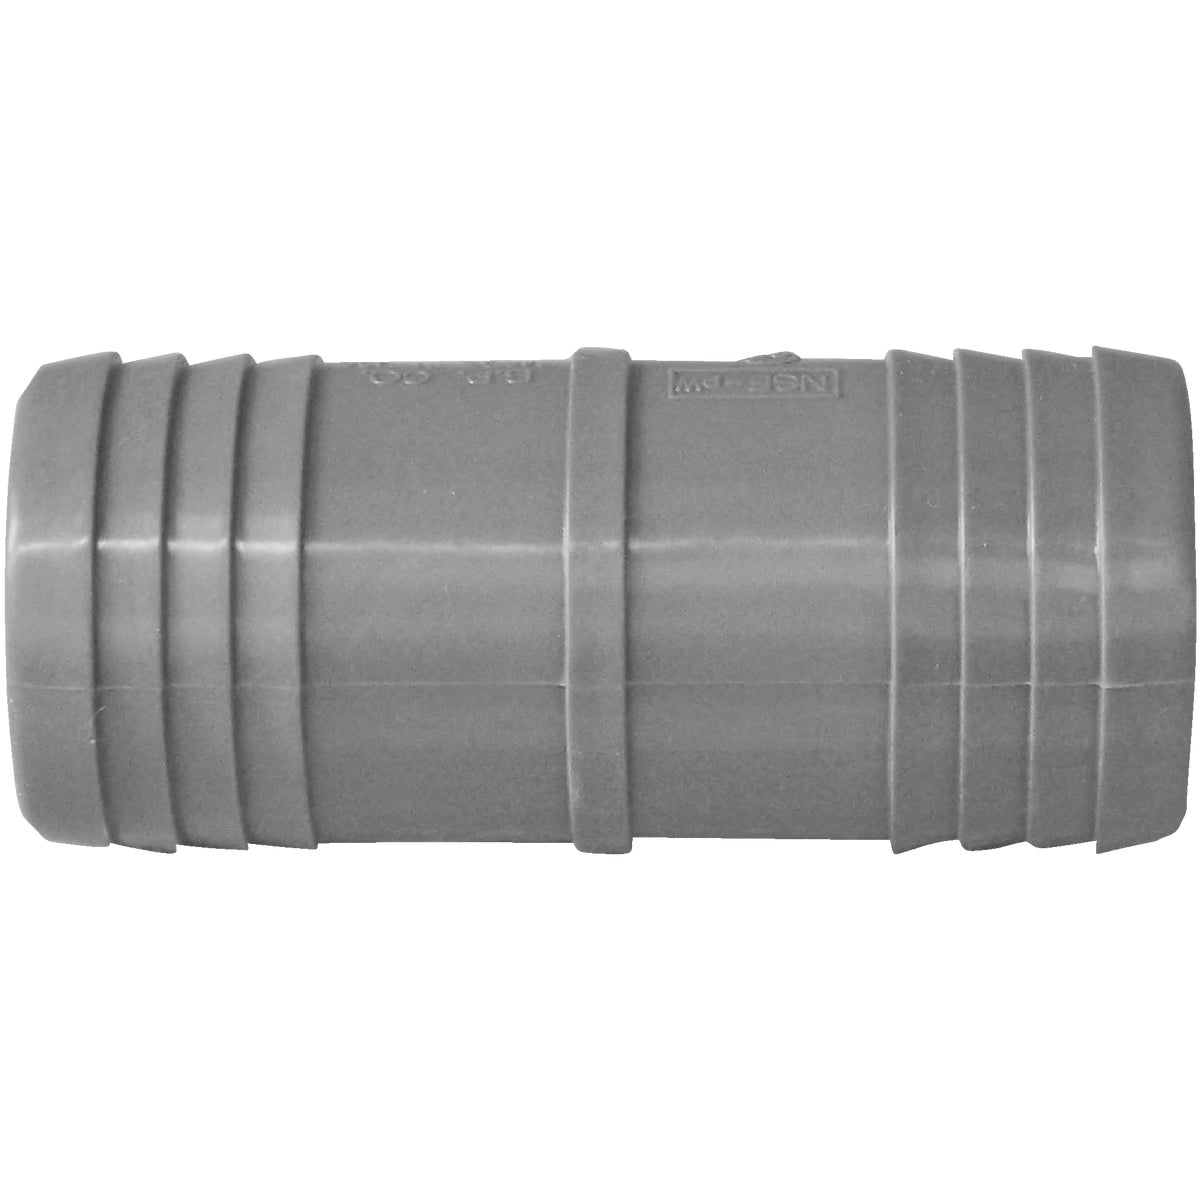 "1-1/4"" POLY INS COUPLING - 350114 by Genova Inc"